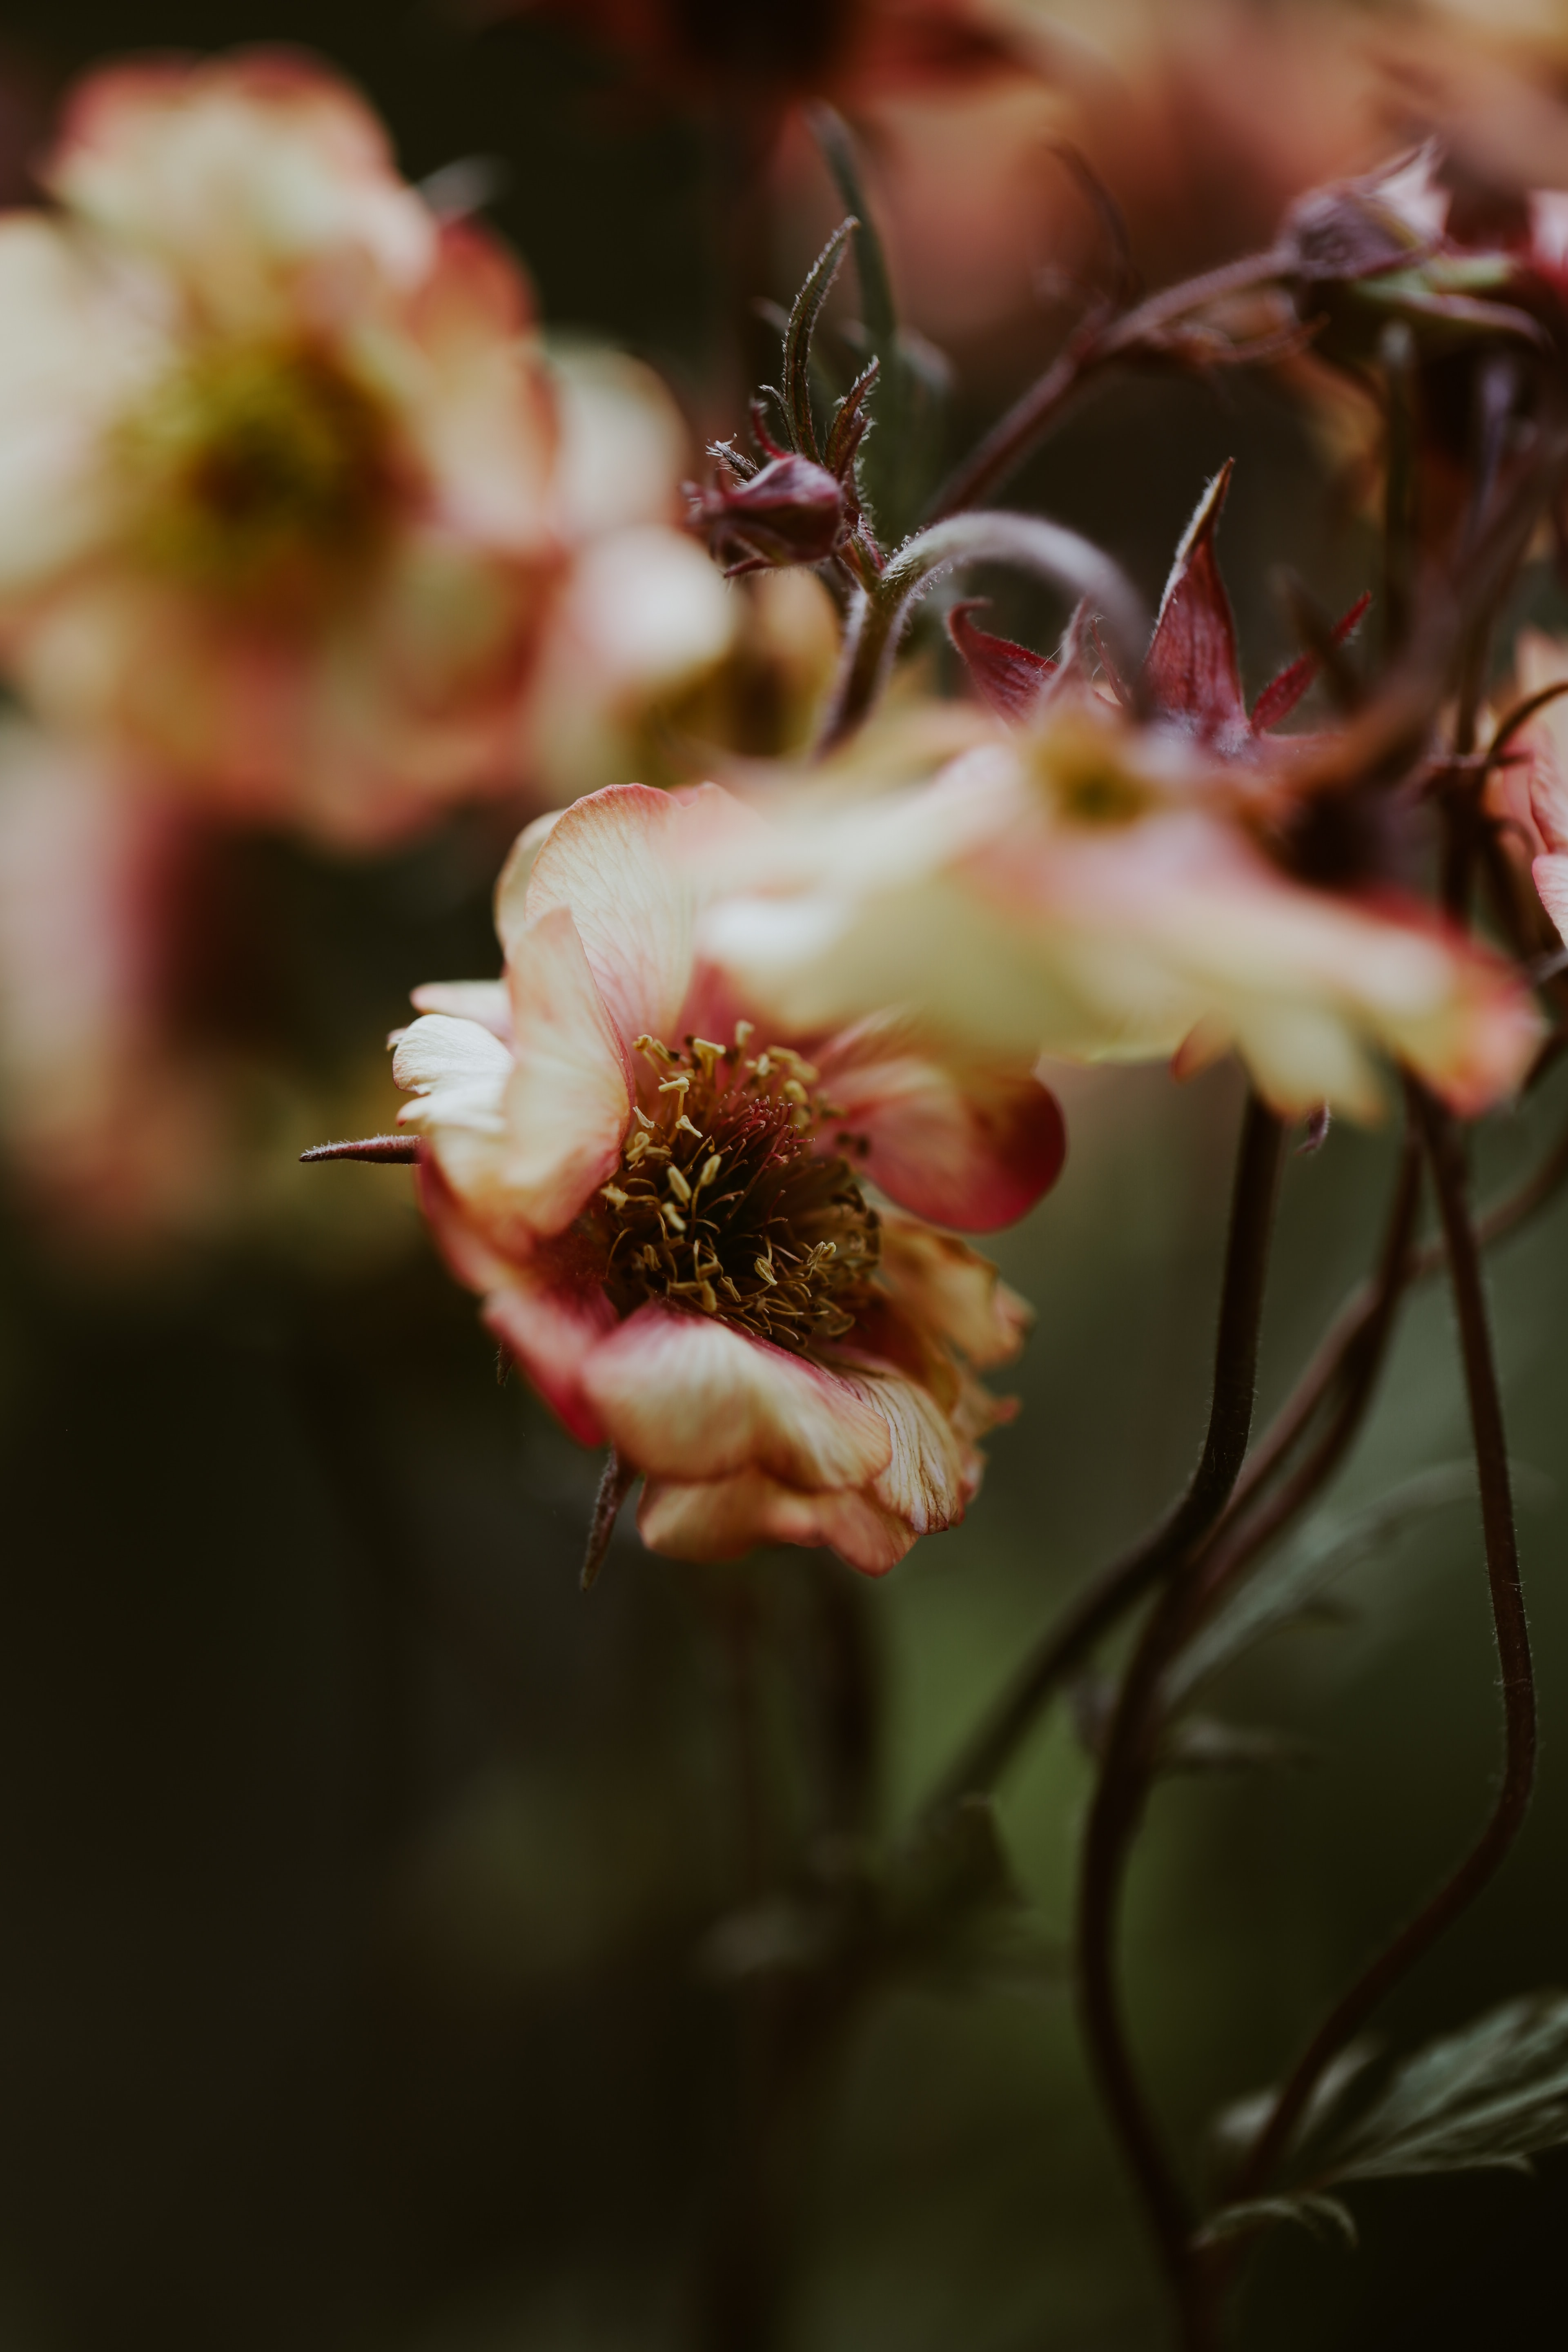 red and white petaled flowers in selective focus photography